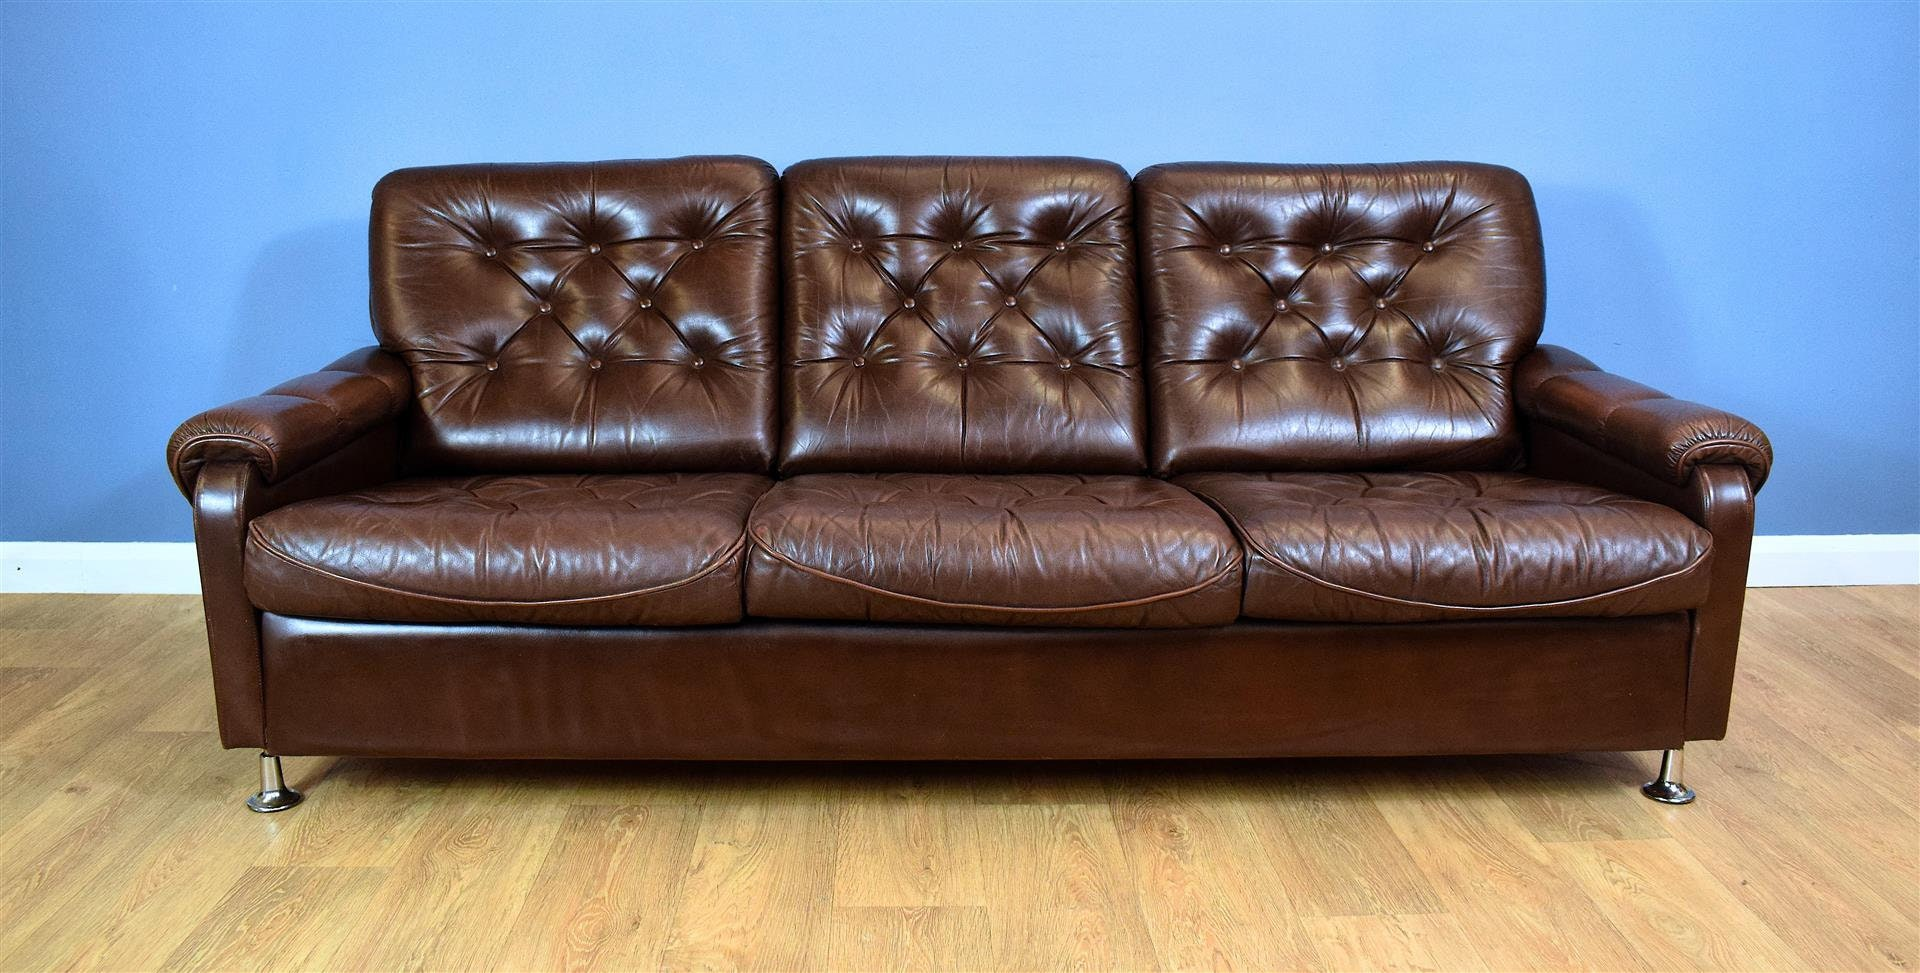 Mid Century Retro Vintage Danish Brown Leather Buttoned 3 Seat Sofa Settee 1970s